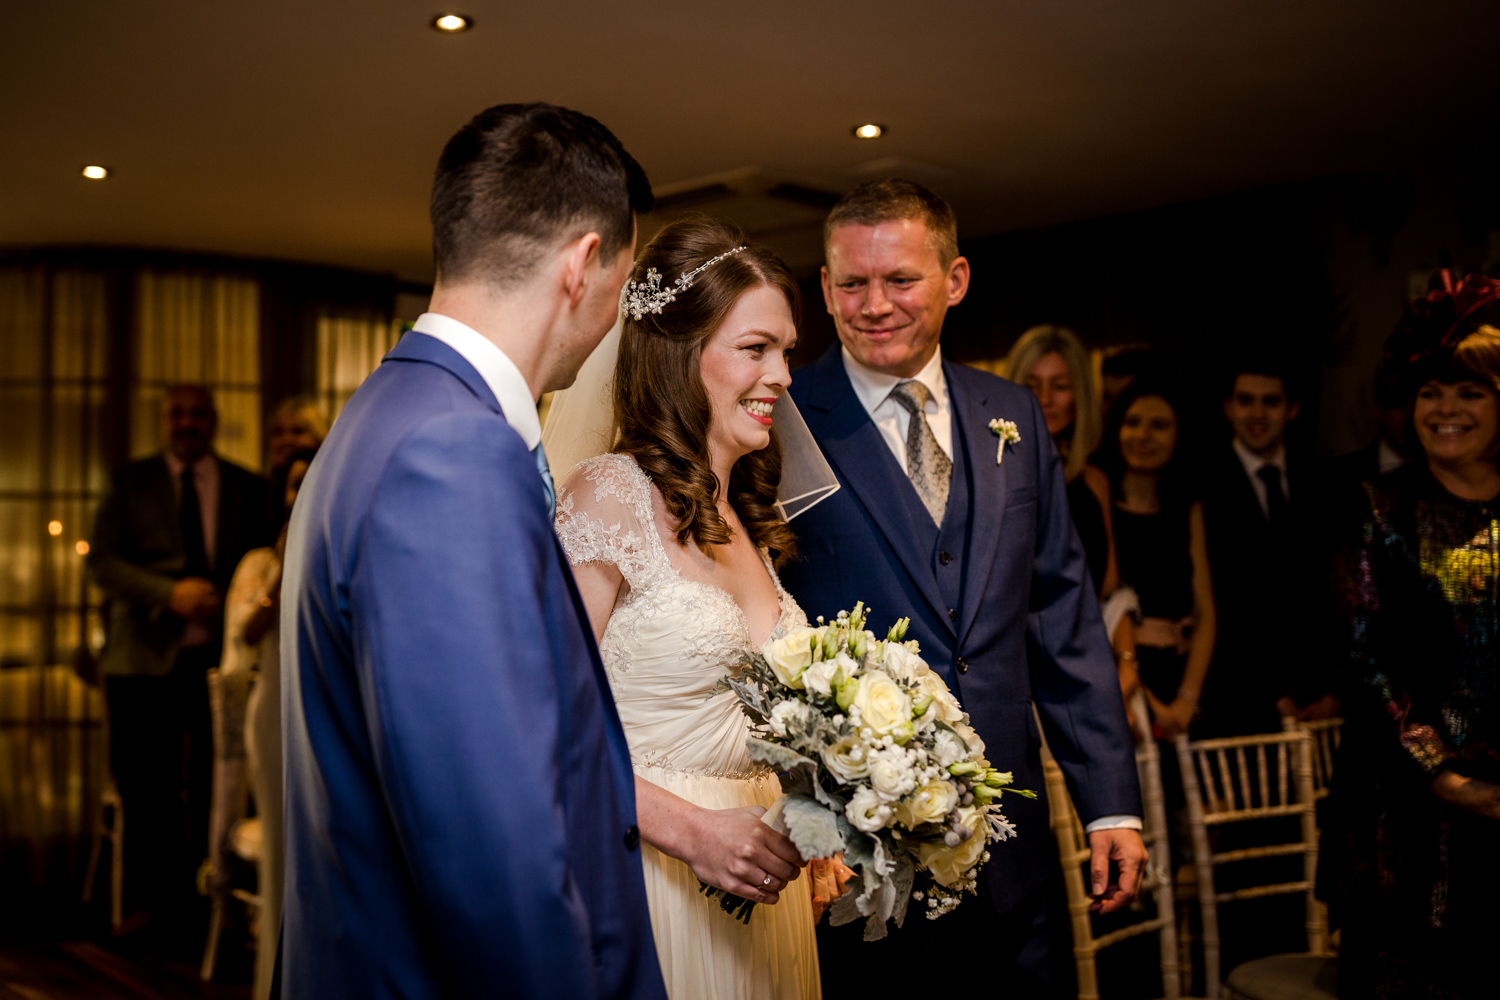 The wedding ceremony at Great John Street Hotel